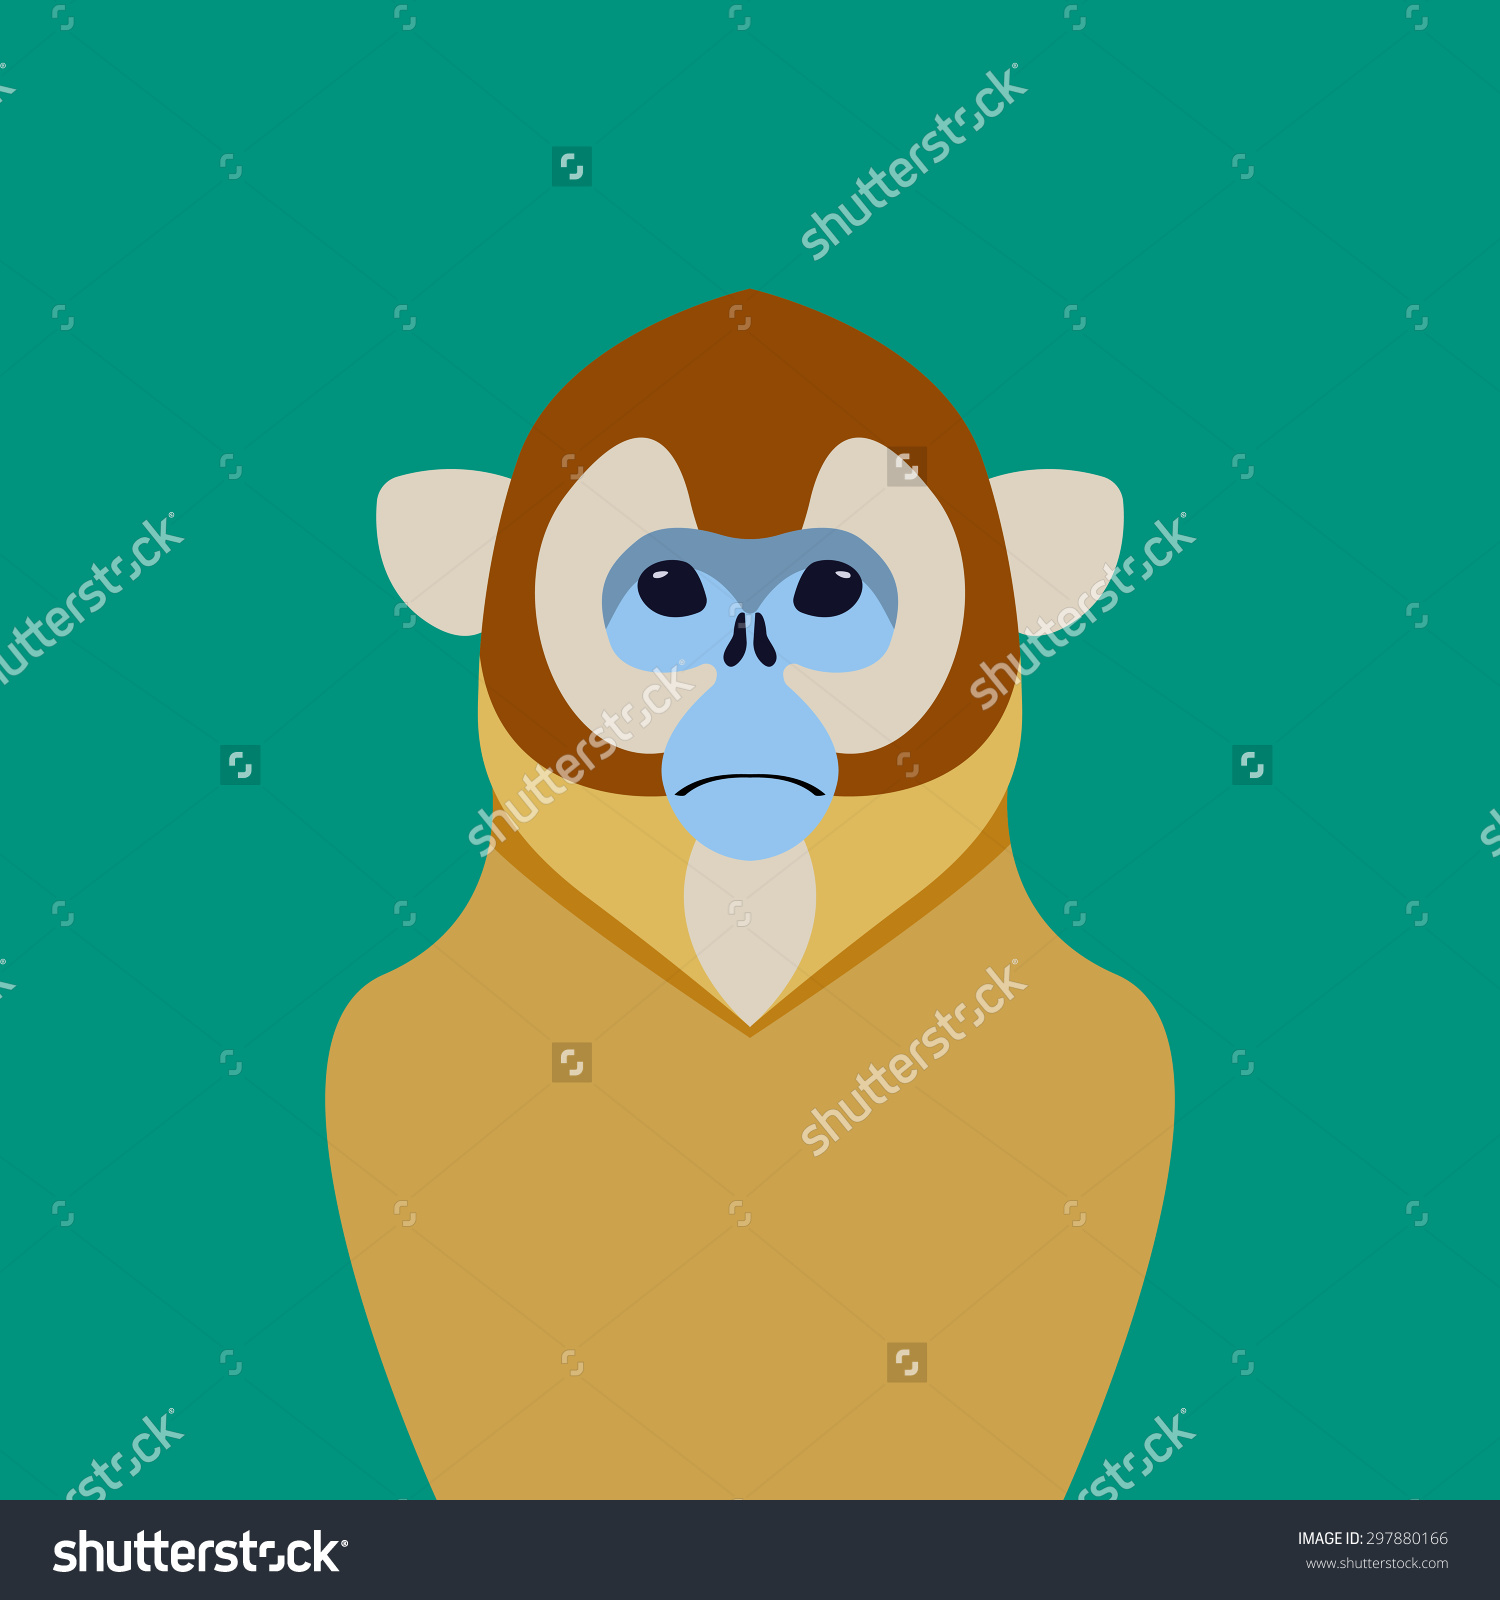 Golden Snub-nosed Monkey clipart #16, Download drawings